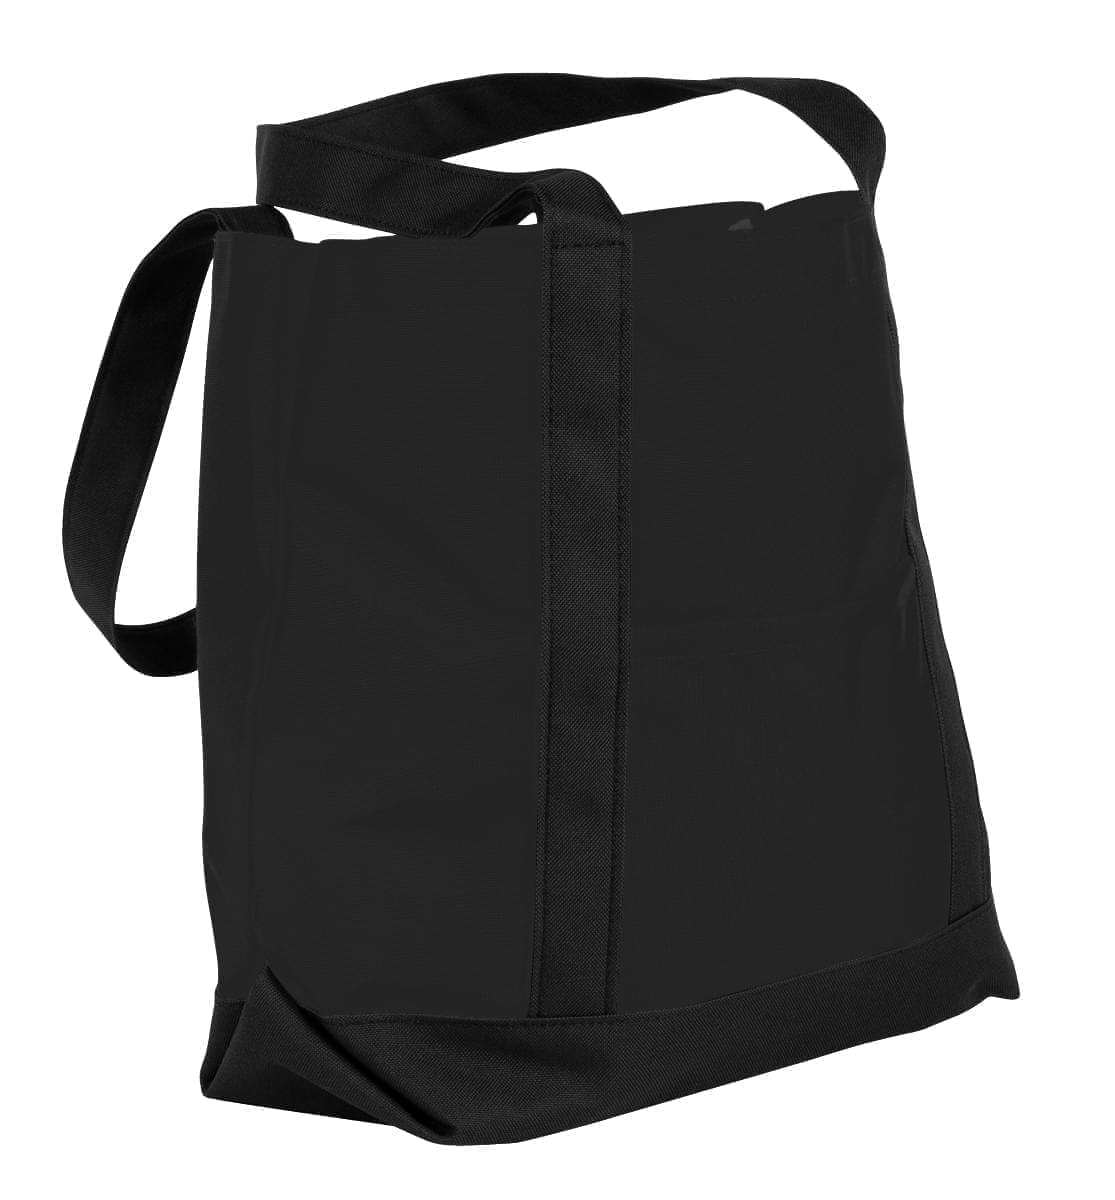 USA Made Nylon Poly Boat Tote Bags, Black-Black, XAACL1UAOC